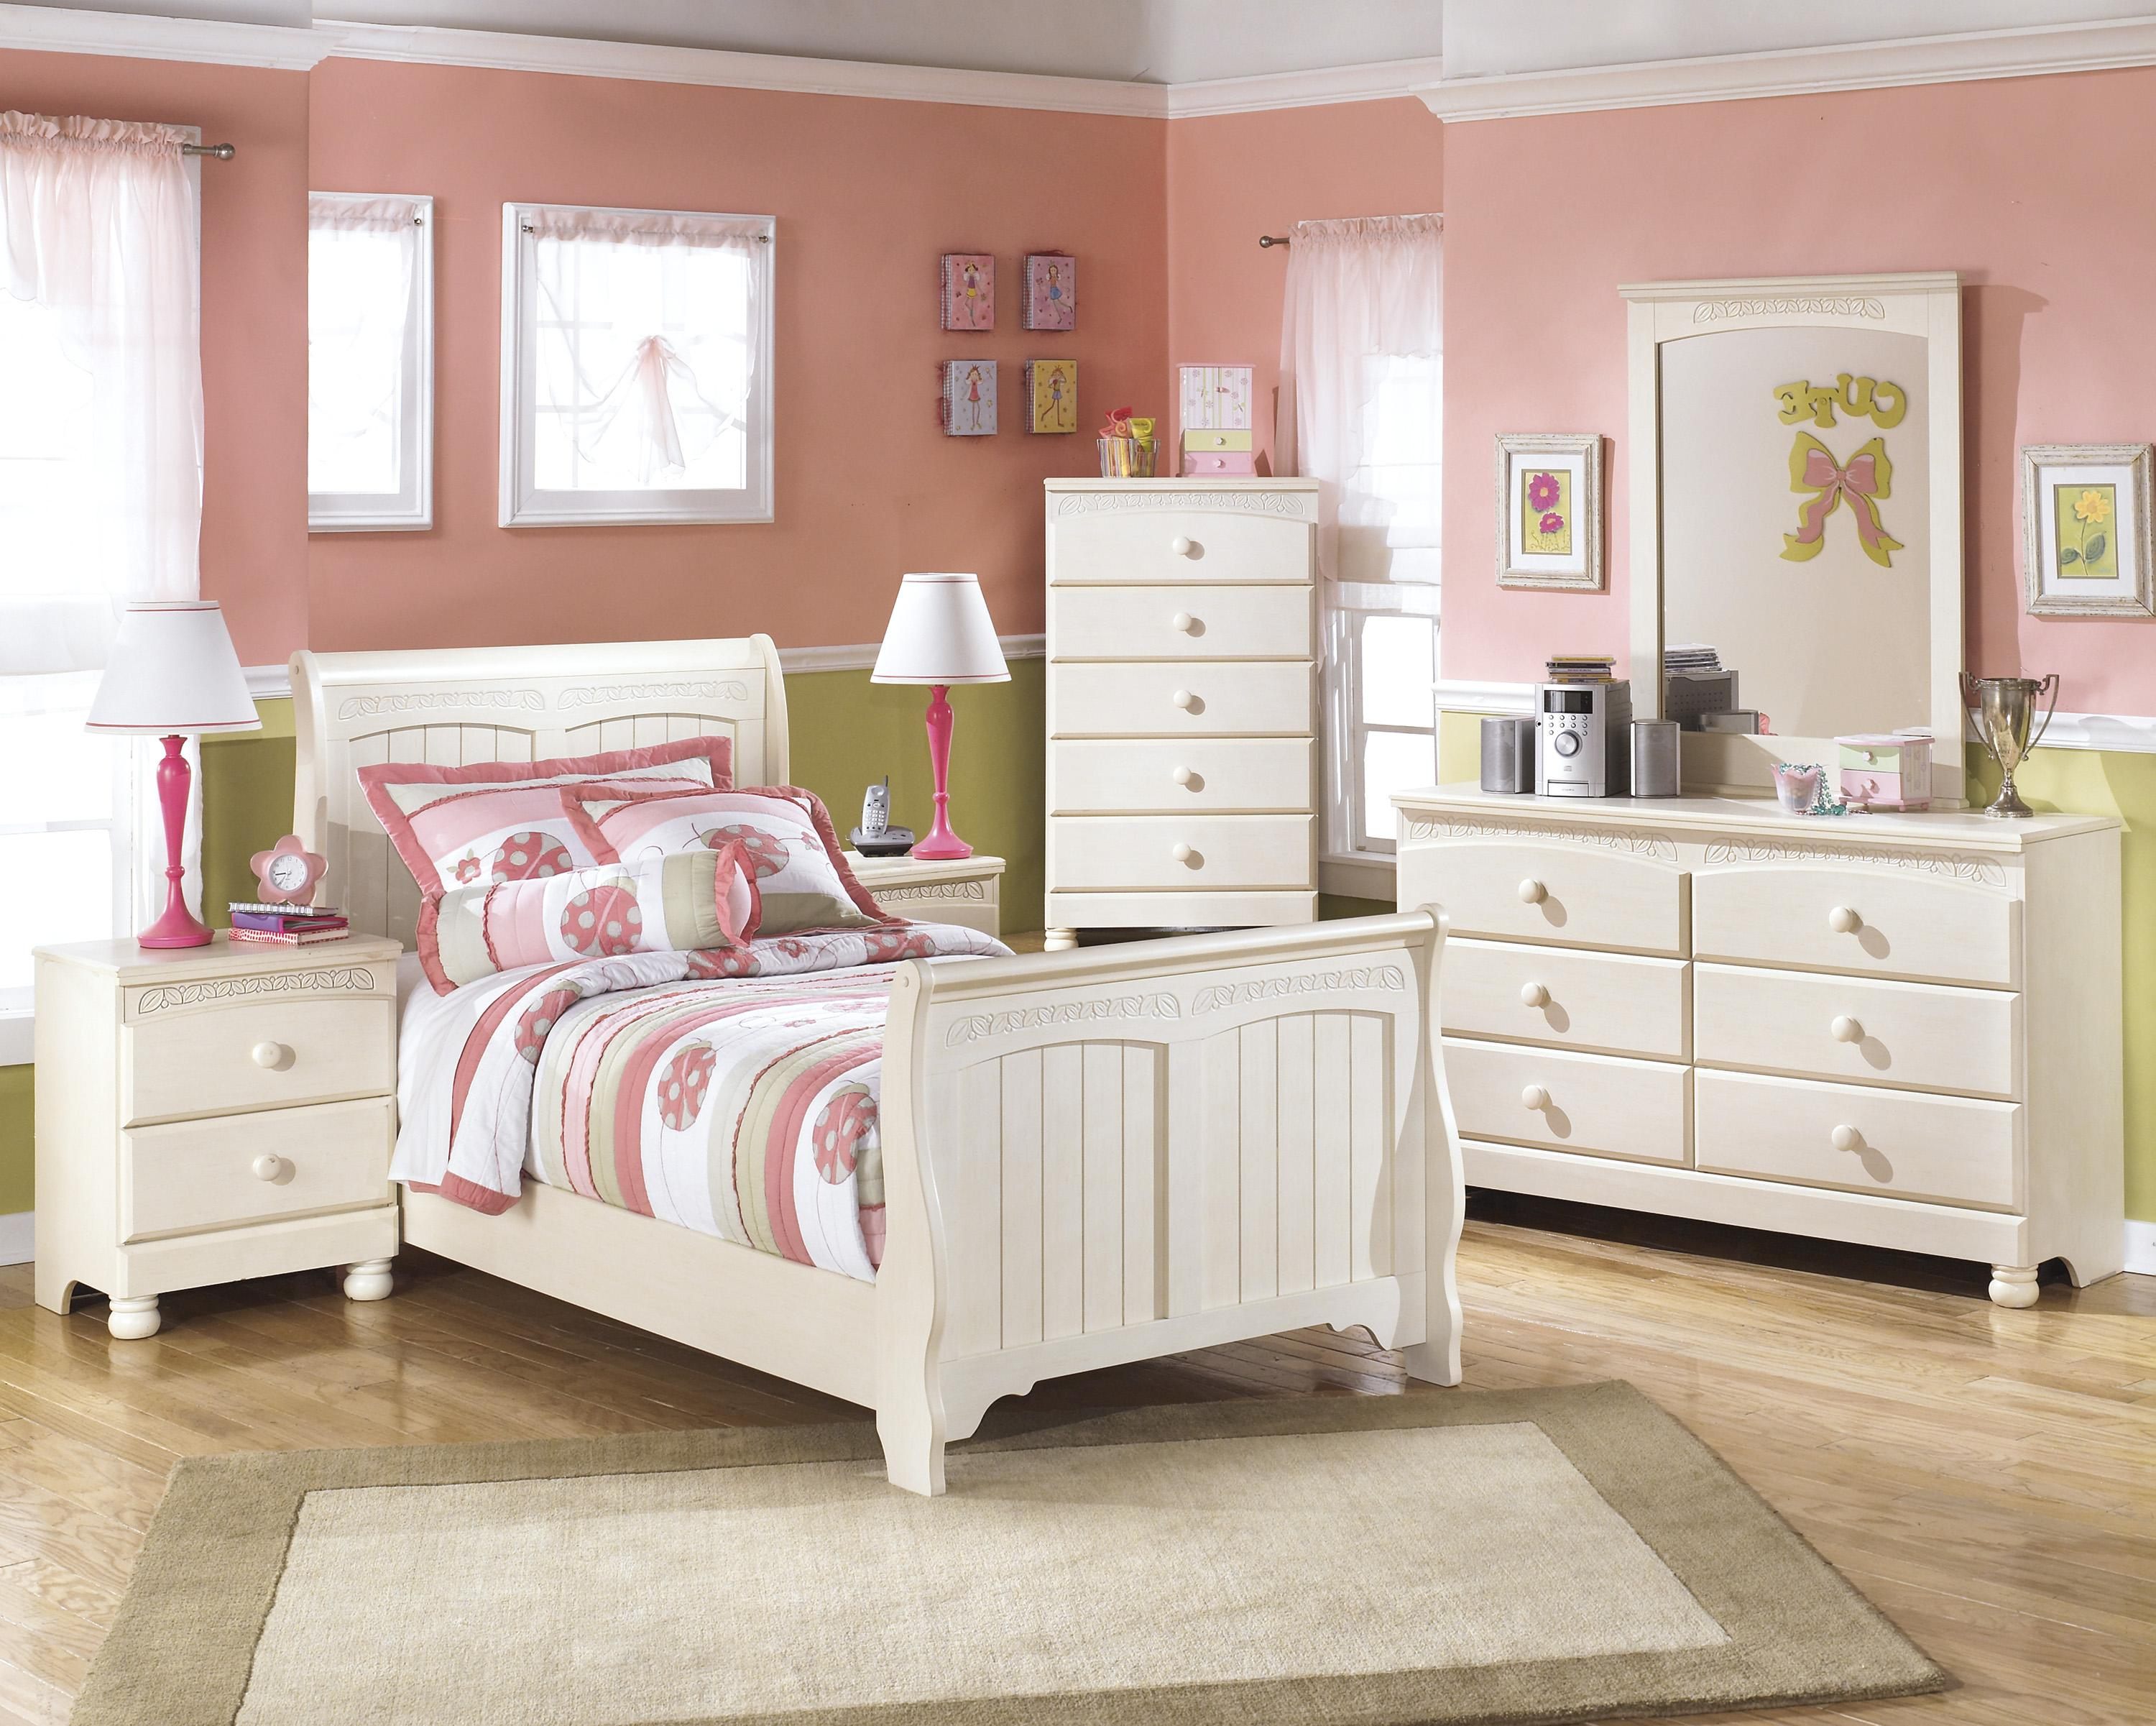 Signature Design by Ashley Cottage Retreat Twin Bedroom Group - Item Number: B213 T Bedroom Group 7